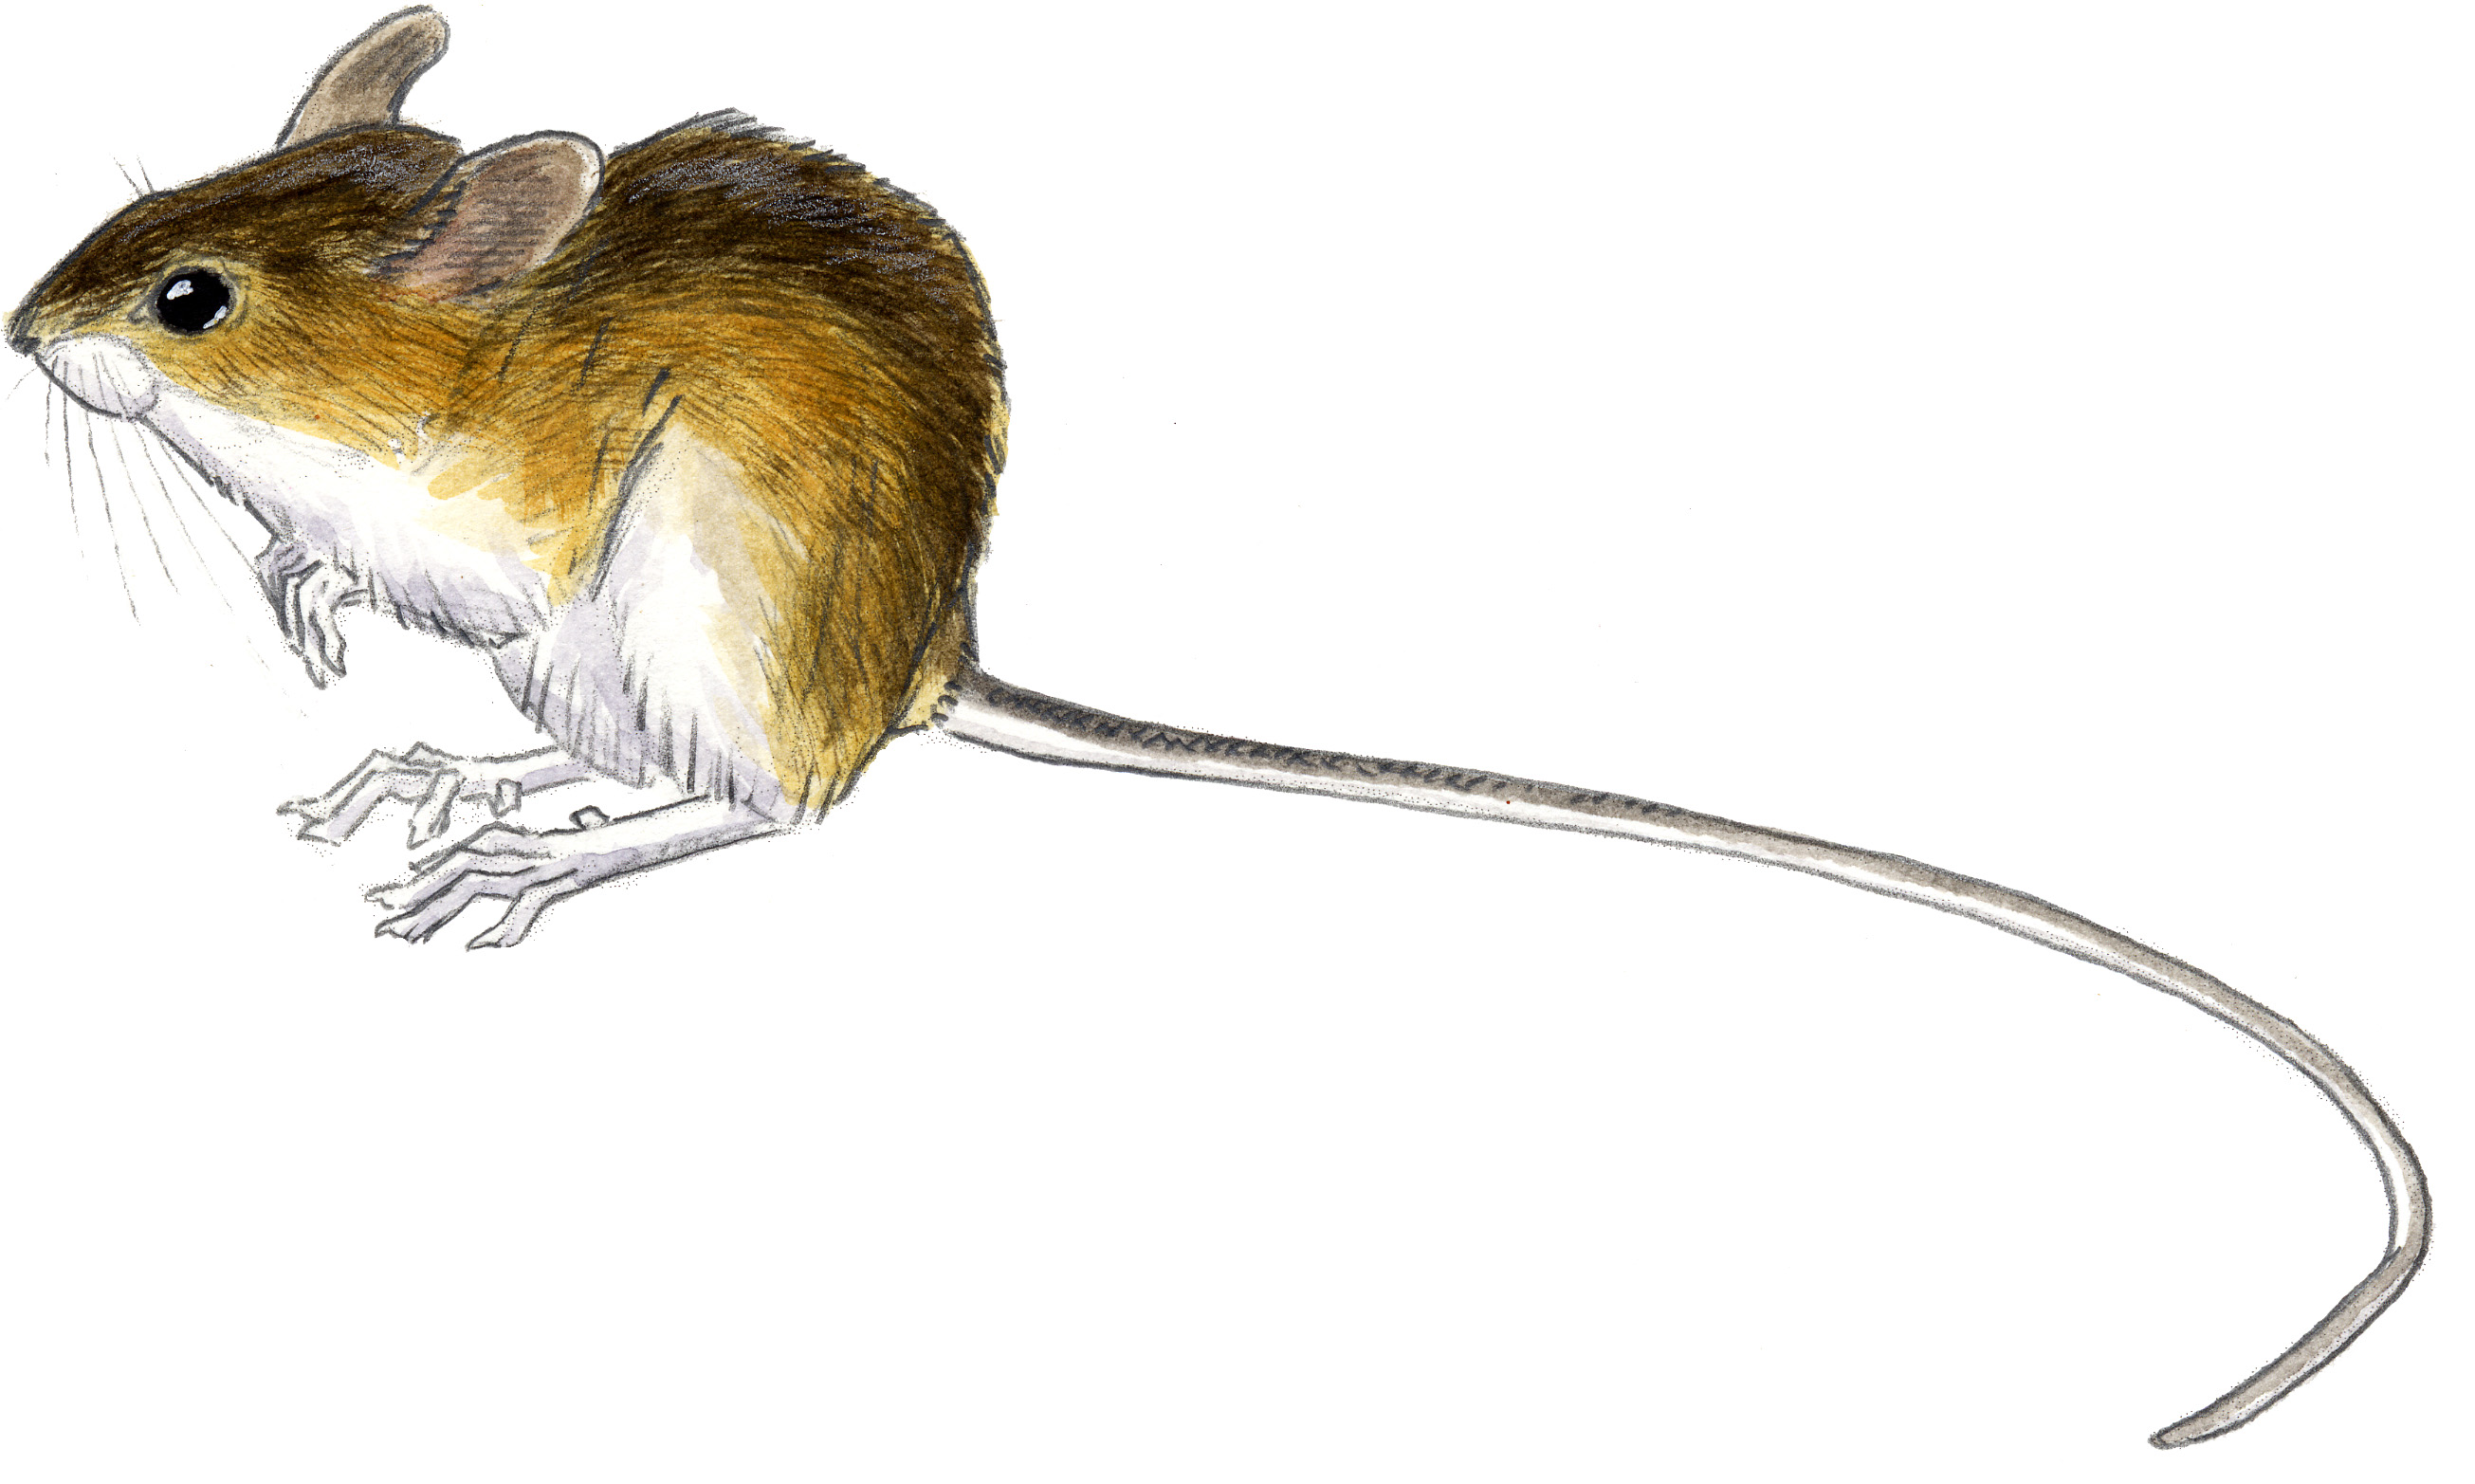 Drawn rodent field mouse Mouse Field Drawing drawing Mouse